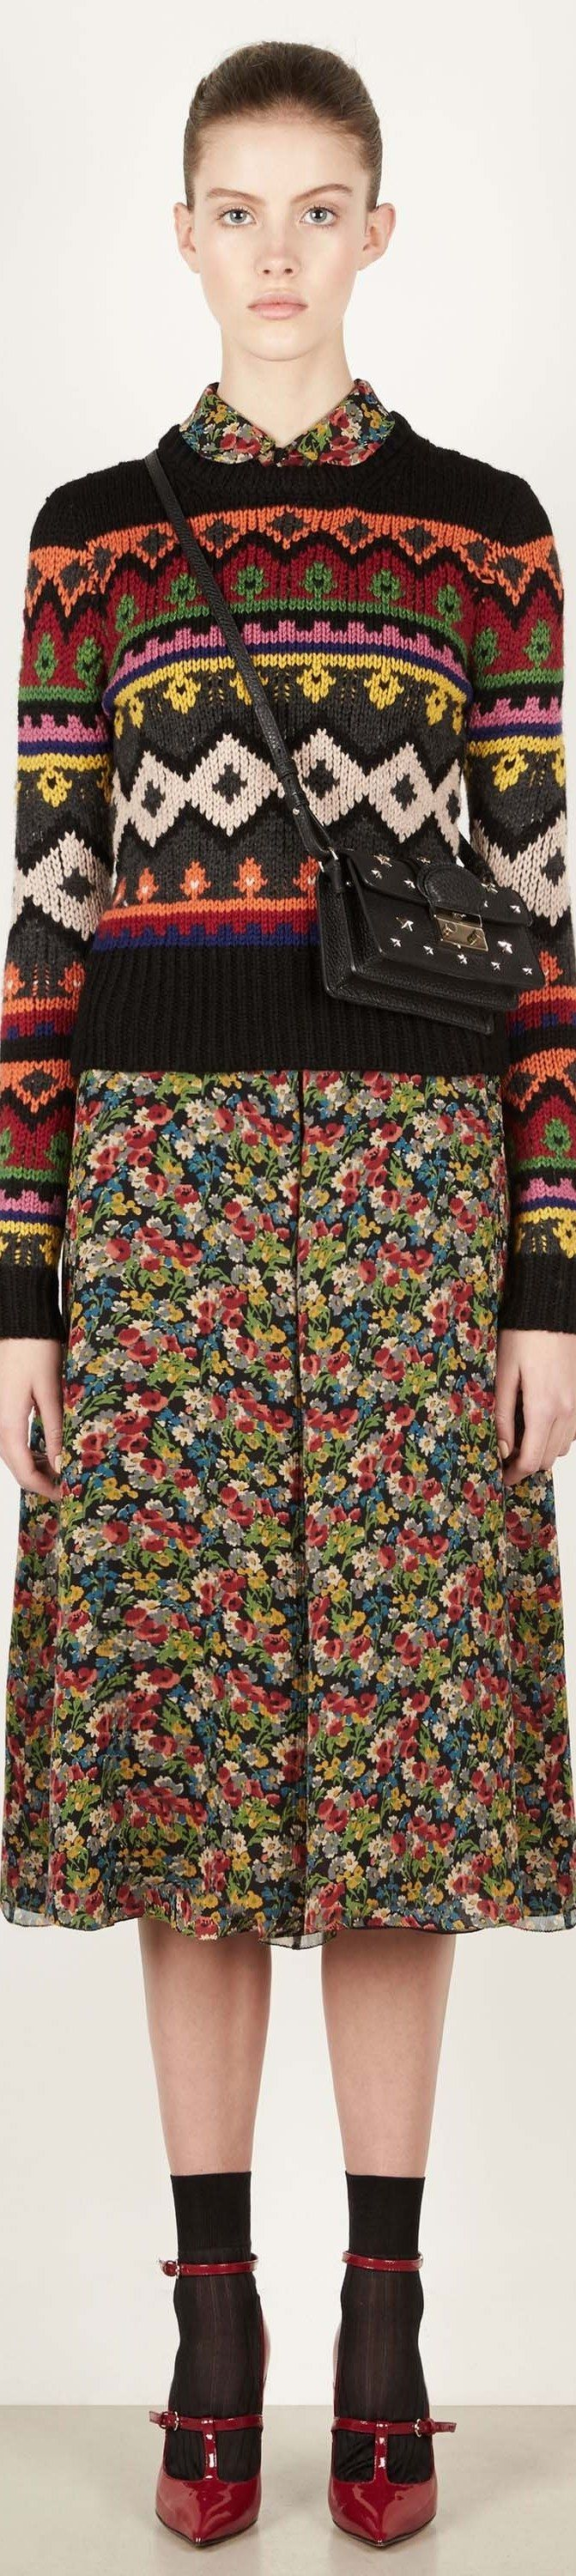 Red Valentino - FALL 2016 READY-TO-WEAR